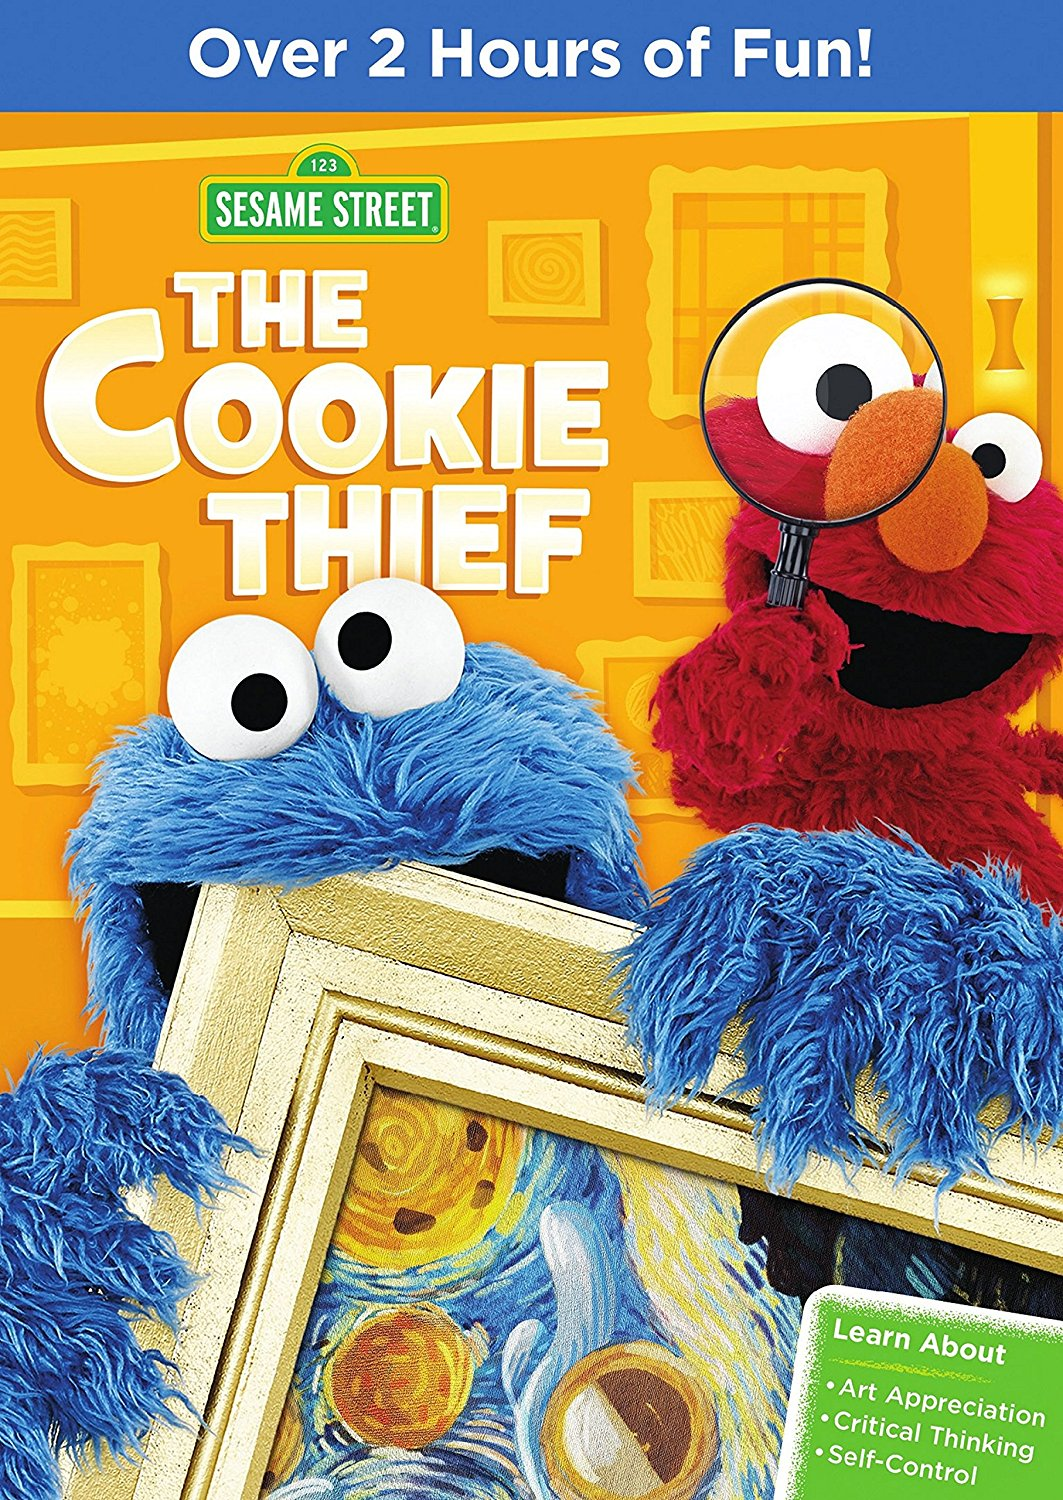 Sesame Street: The Cookie Thief (2015)